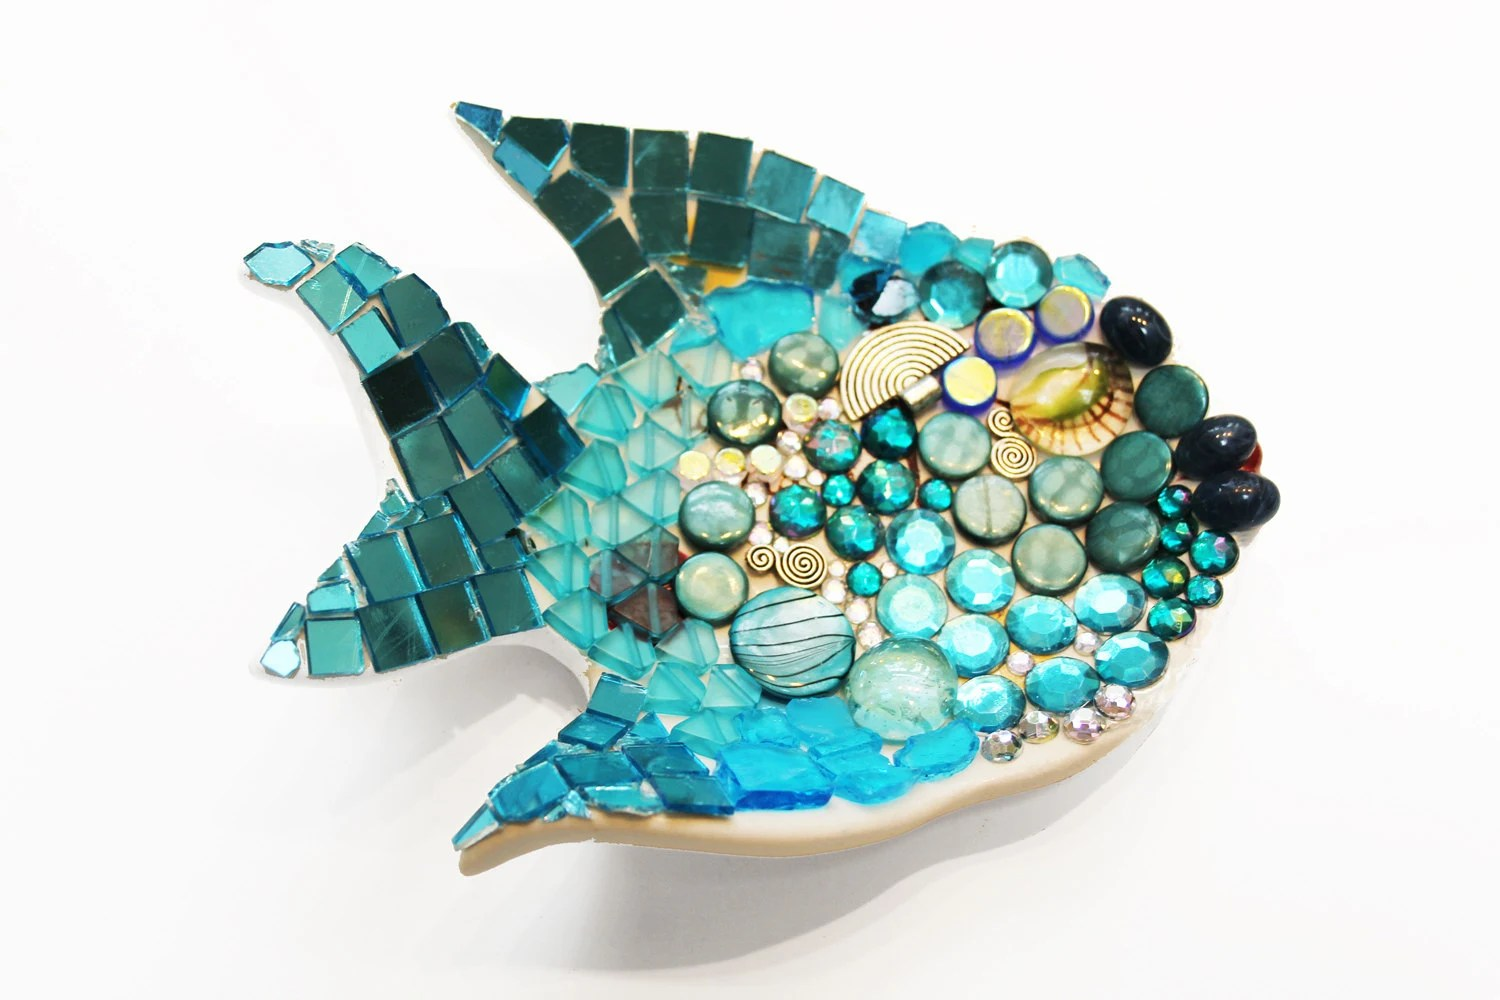 Mosaic Turquoise Bubbly Fish Dish - SecondLookMosaics